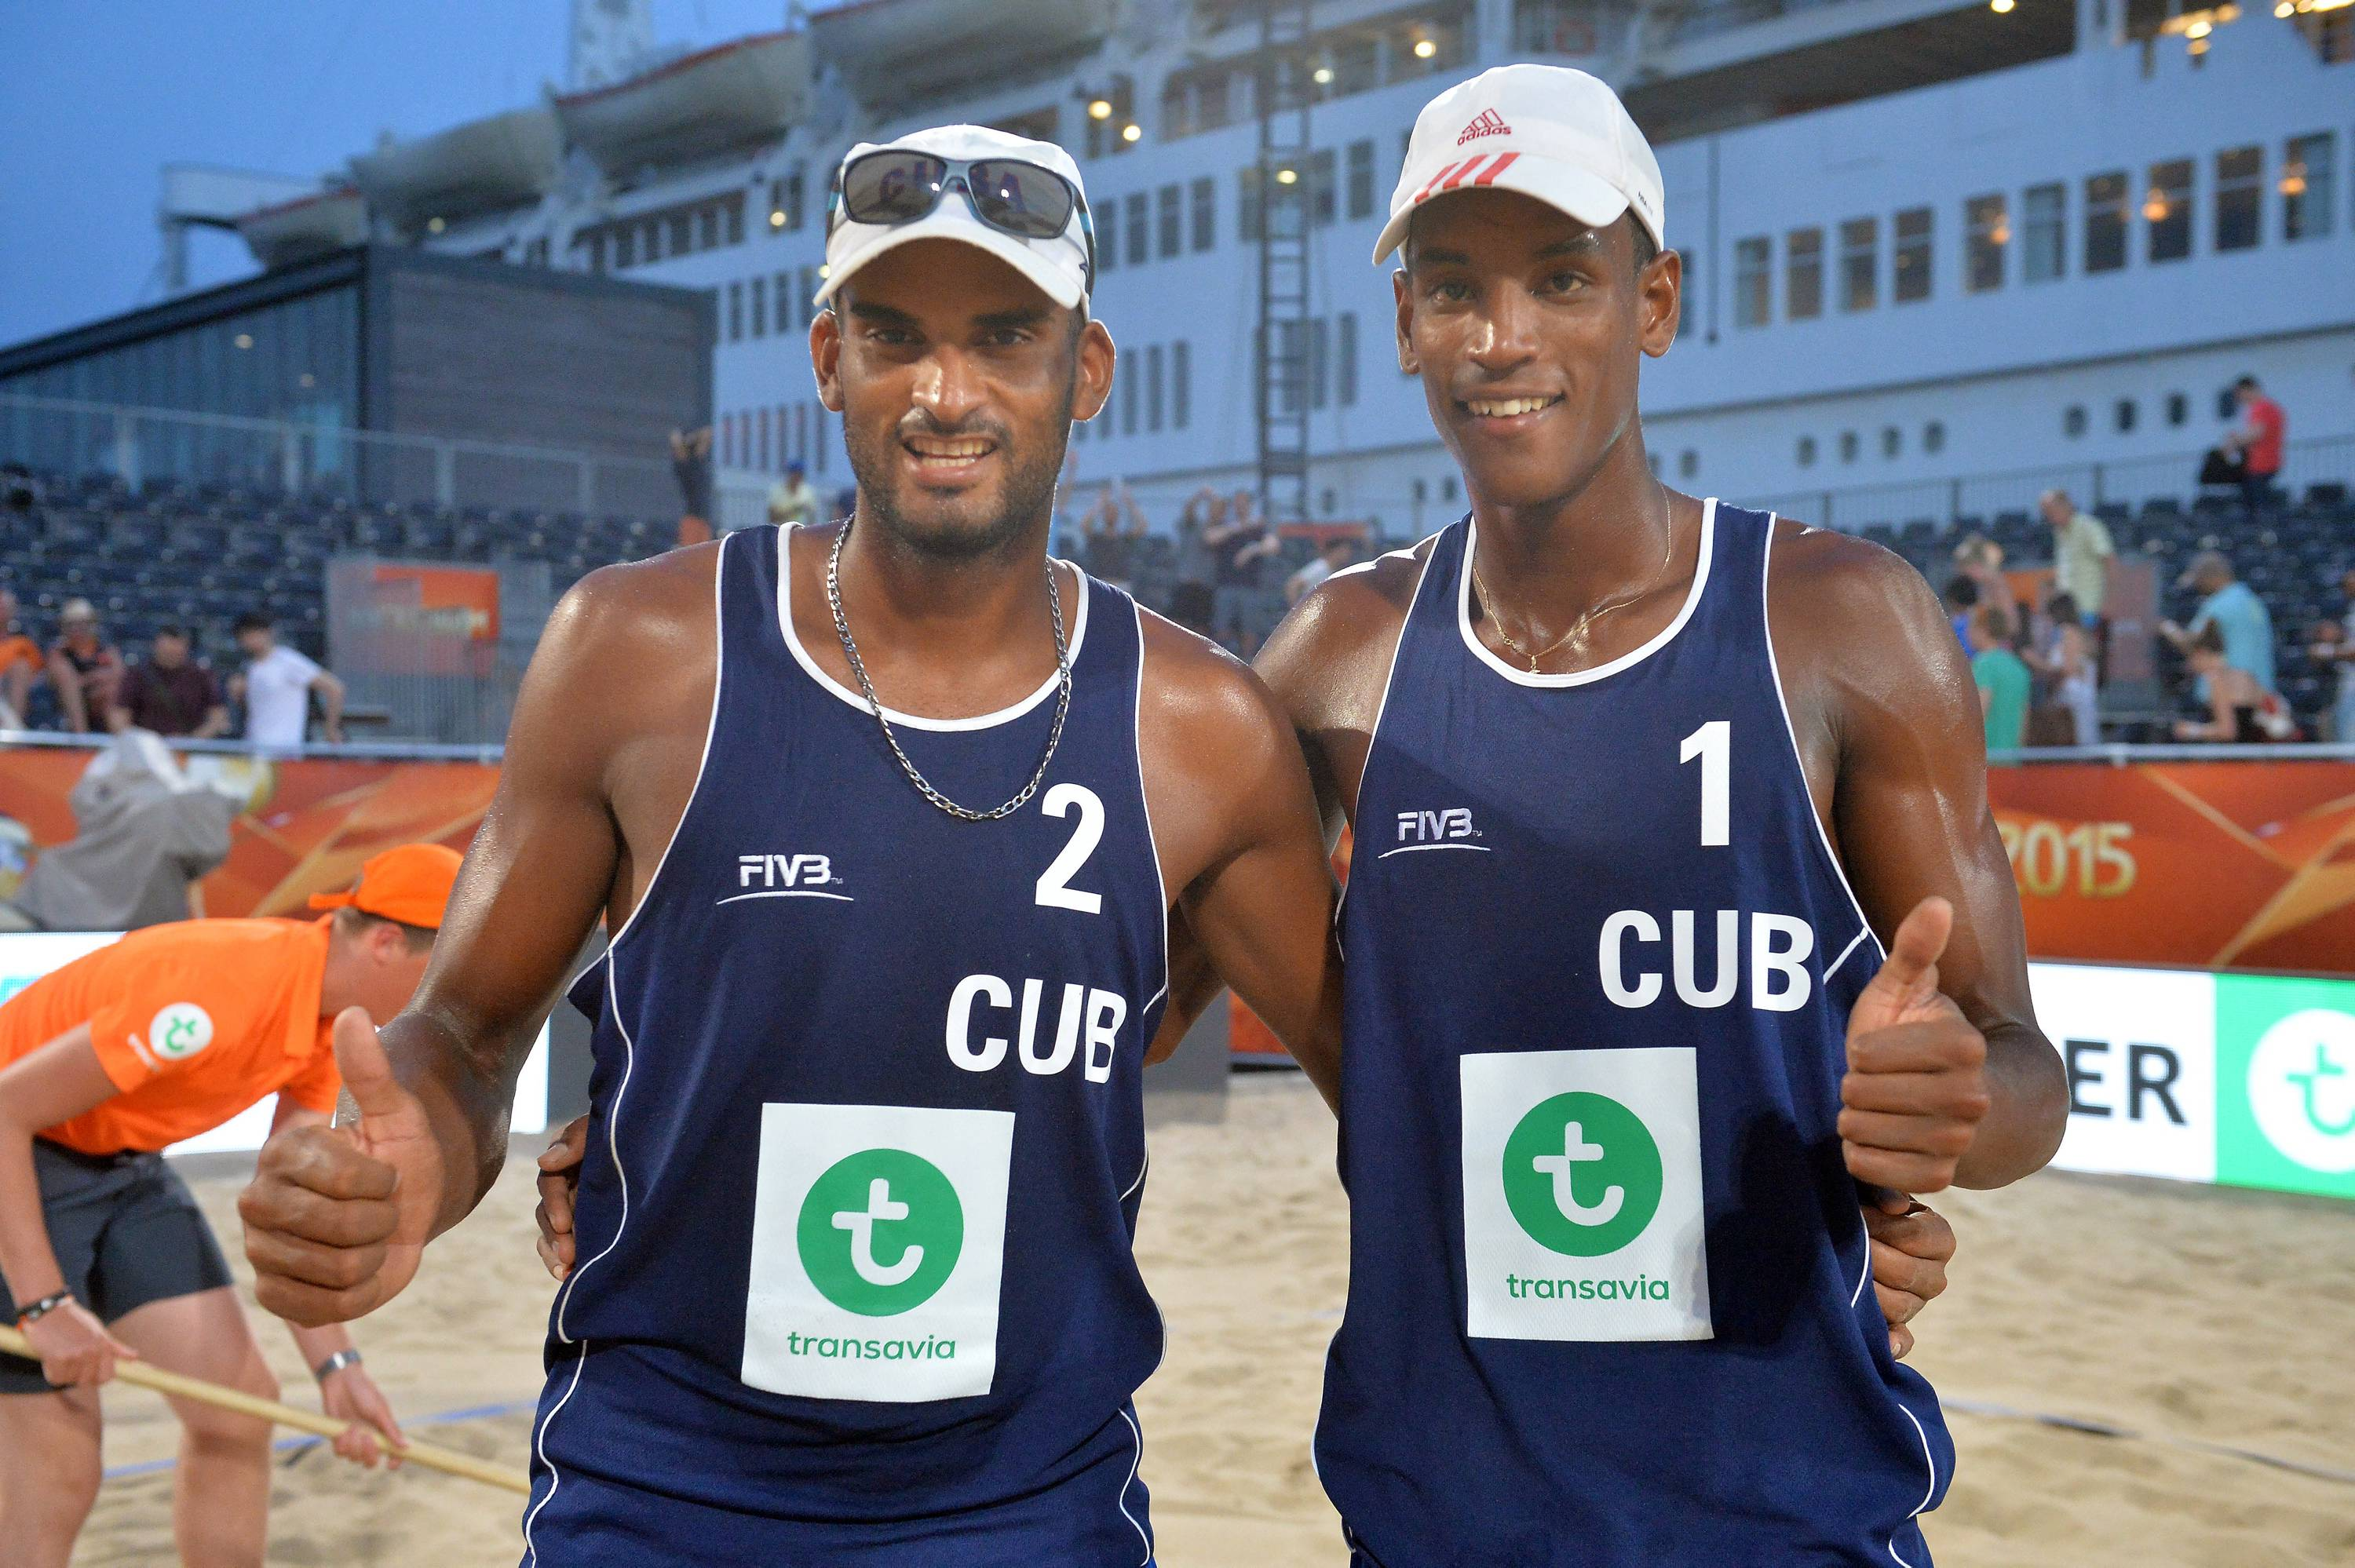 http://www.fivb.org/Vis2009/Images/GetImage.asmx?type=press&no=54009